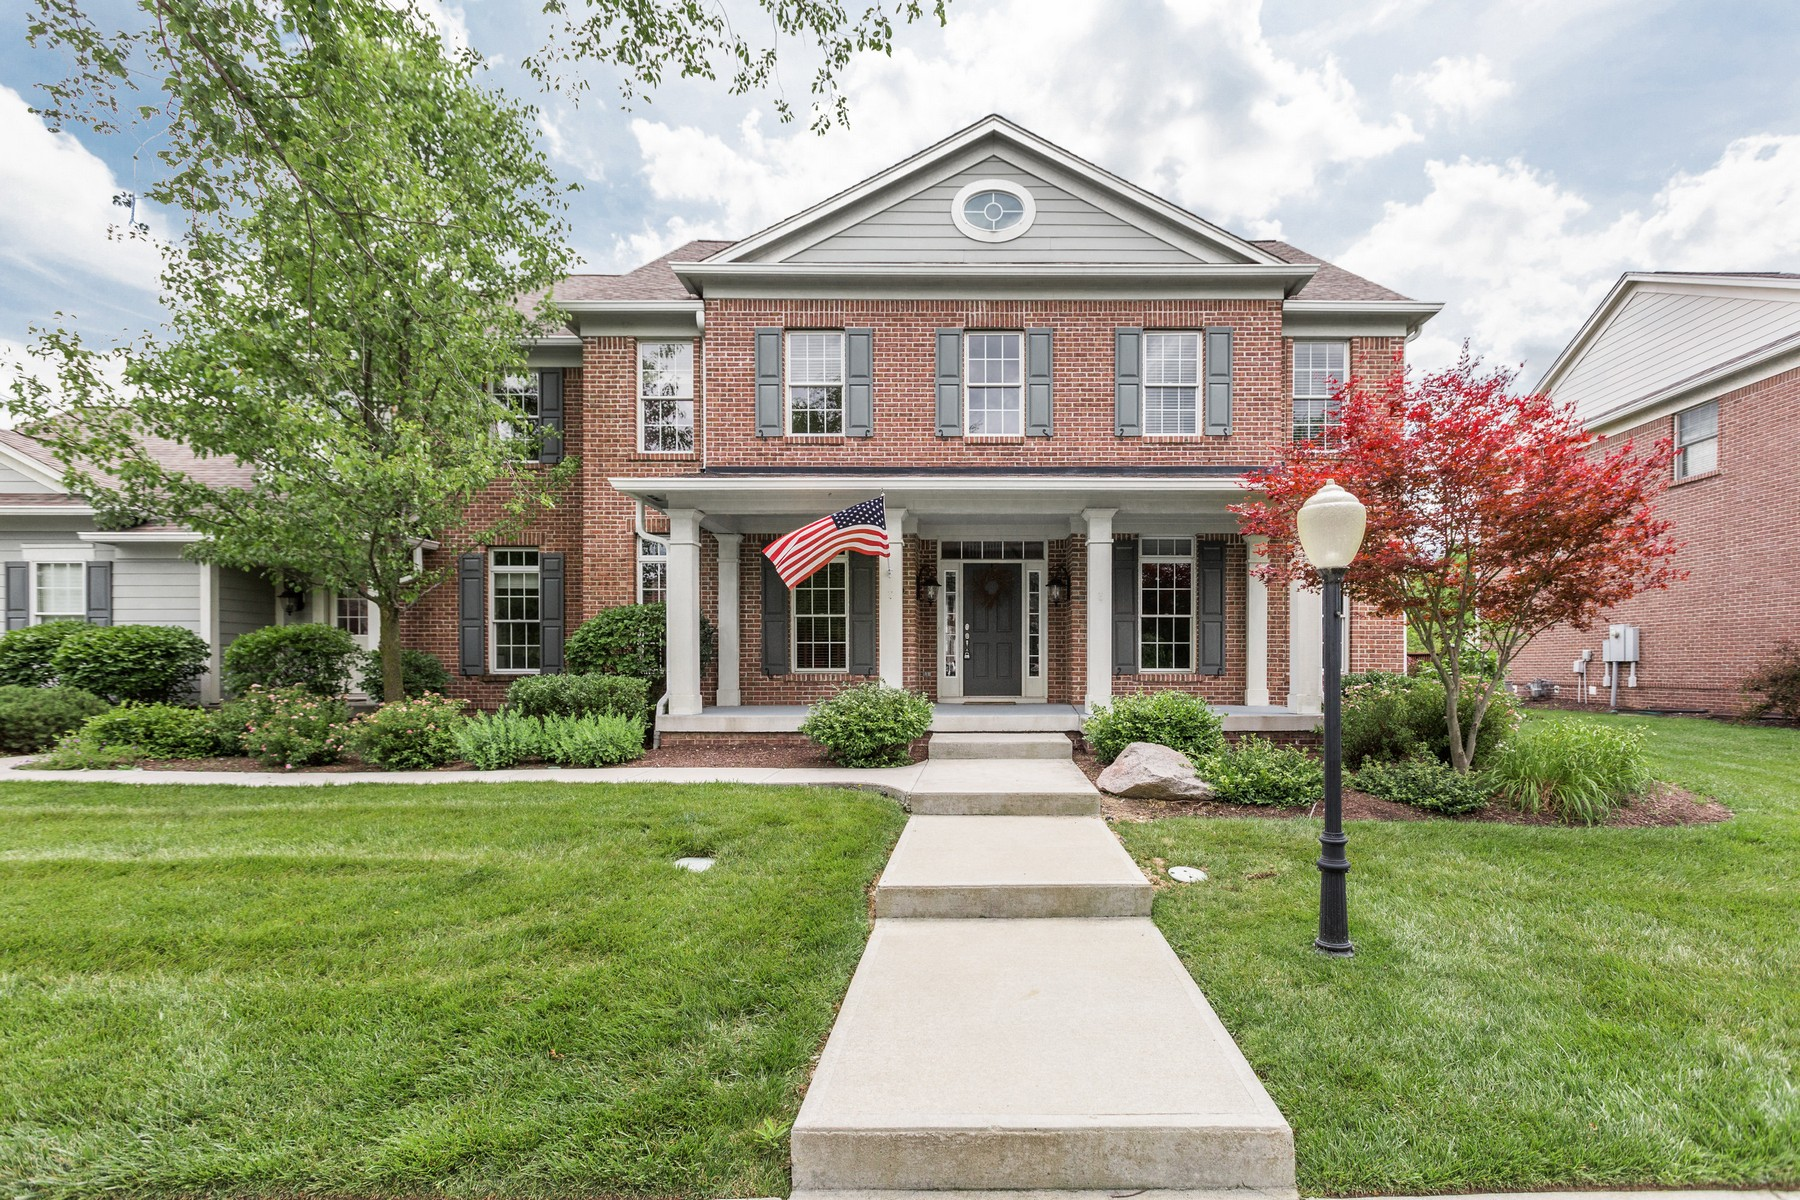 Single Family Home for Sale at Immaculate Village of WestClay Home 1751 Halifax Street Carmel, Indiana 46032 United States